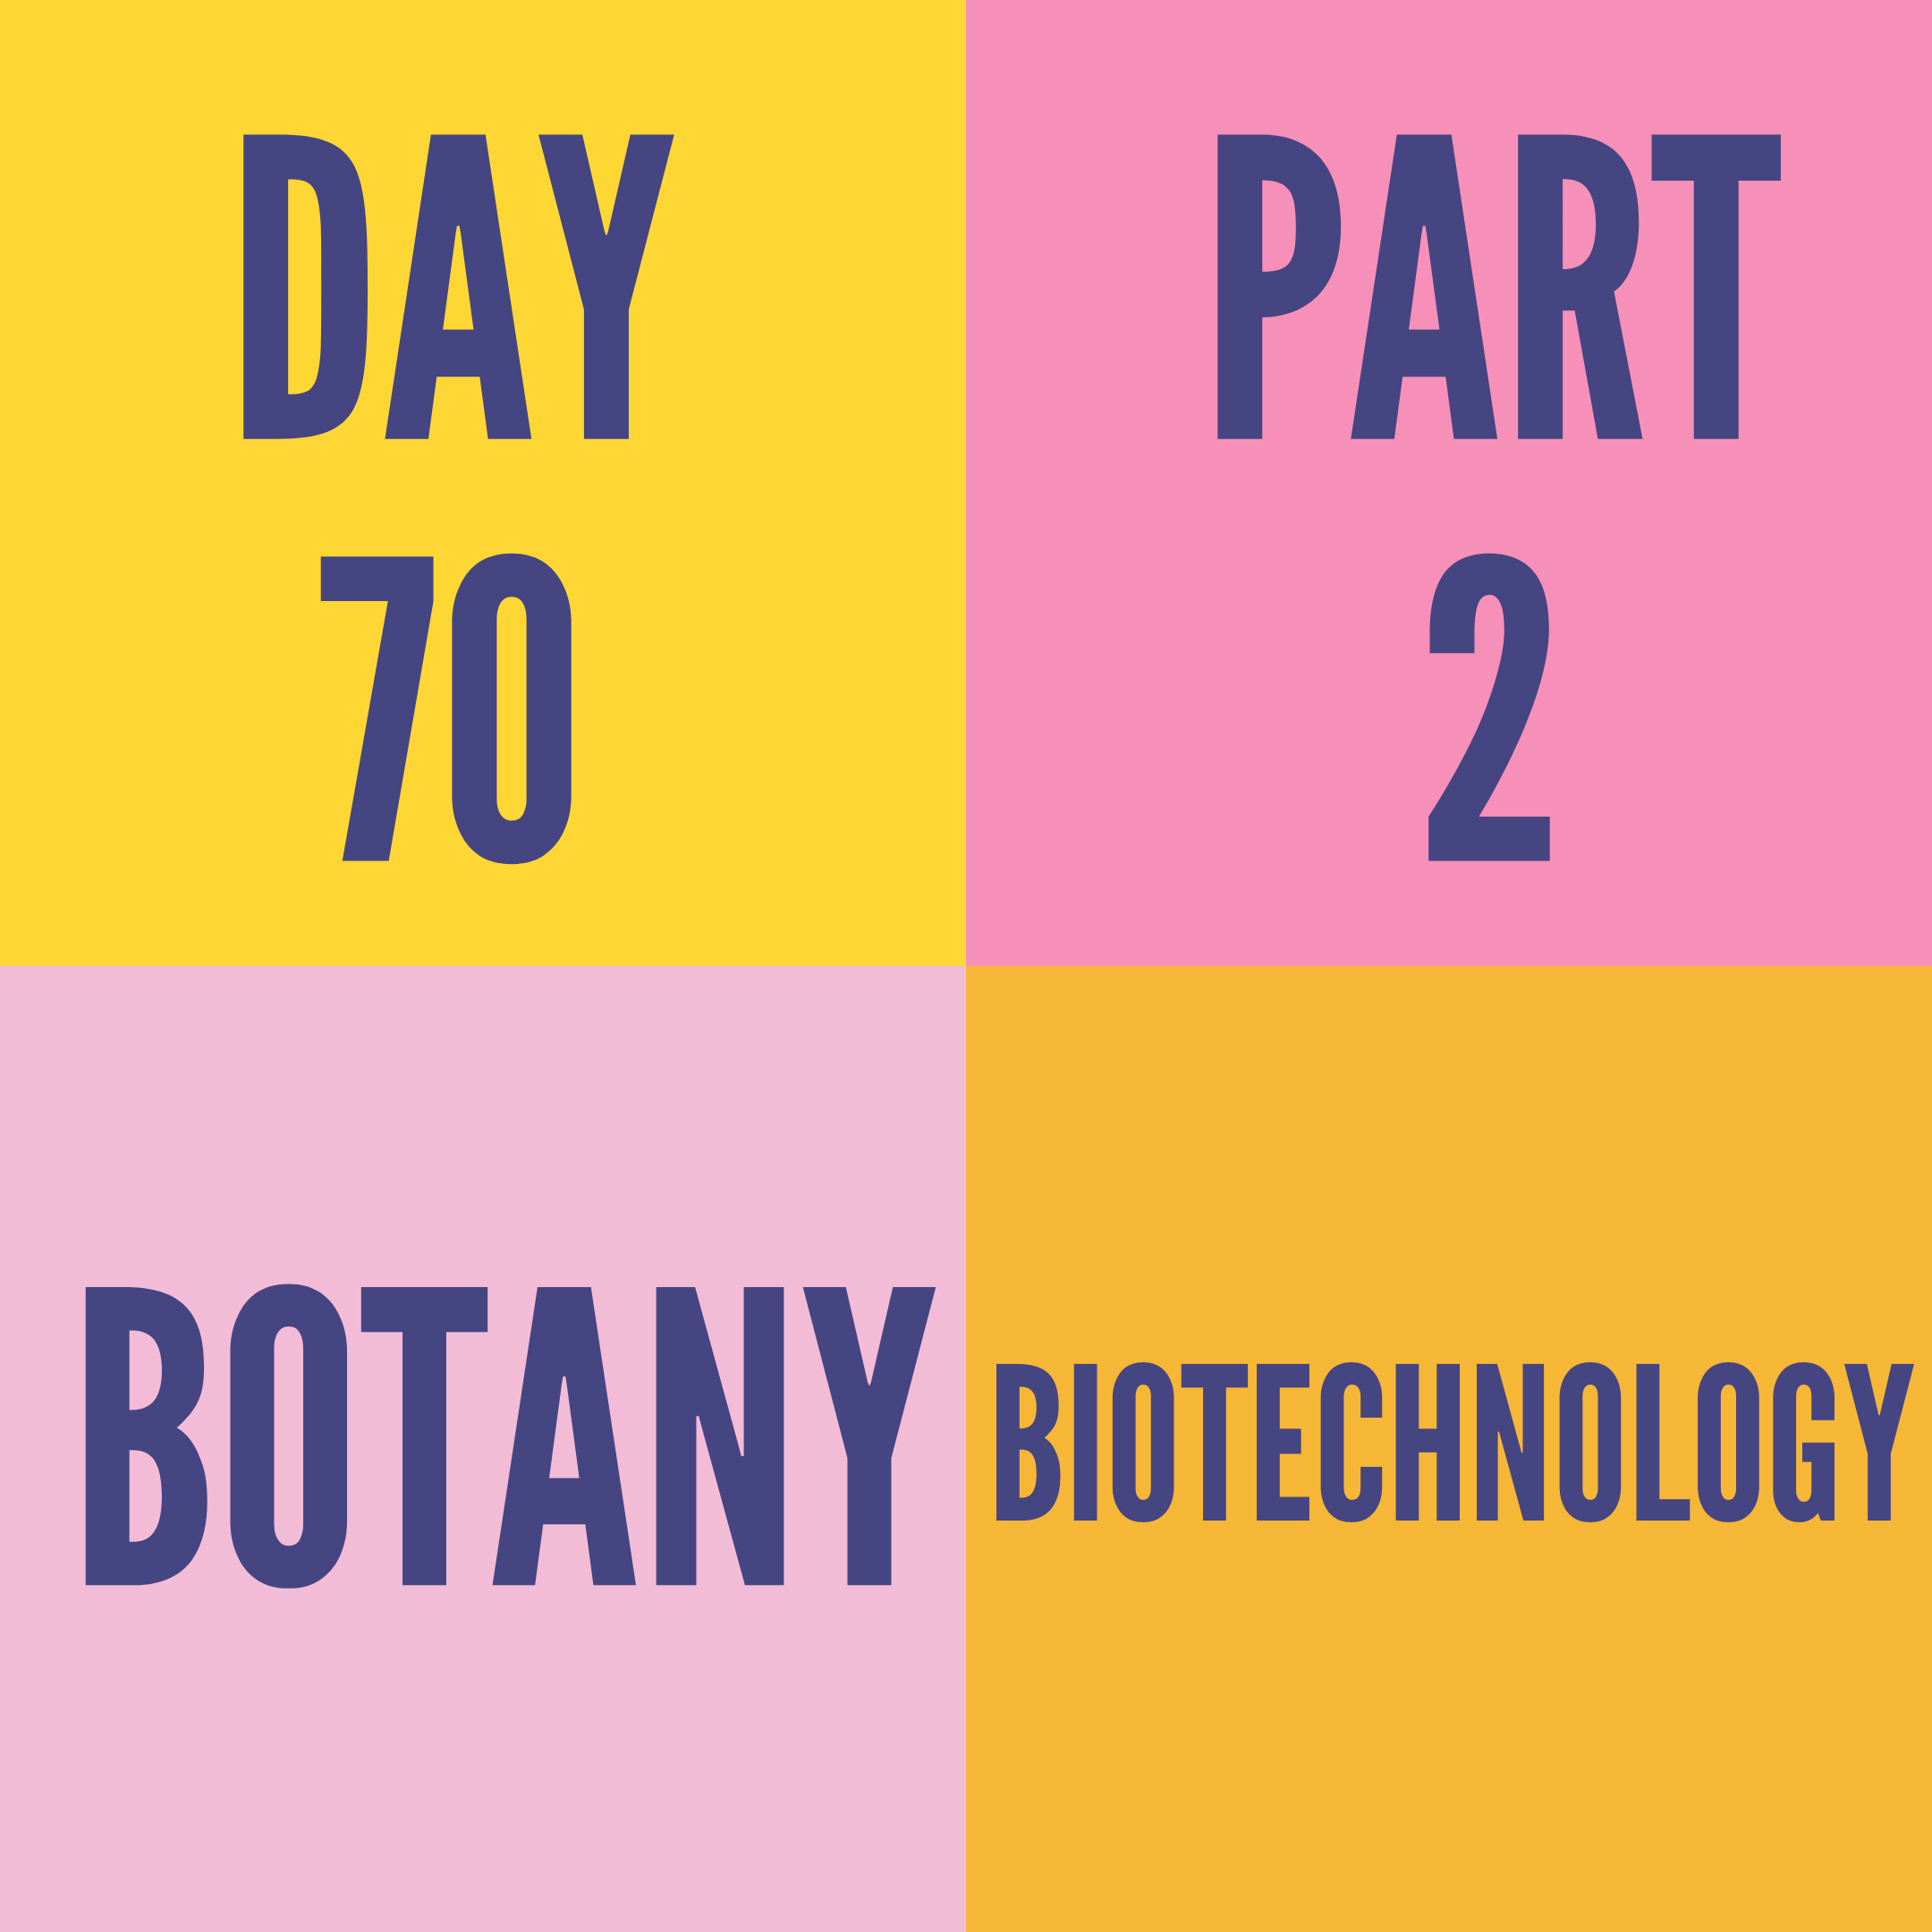 DAY-70 PART-2 BIOTECHNOLOGY